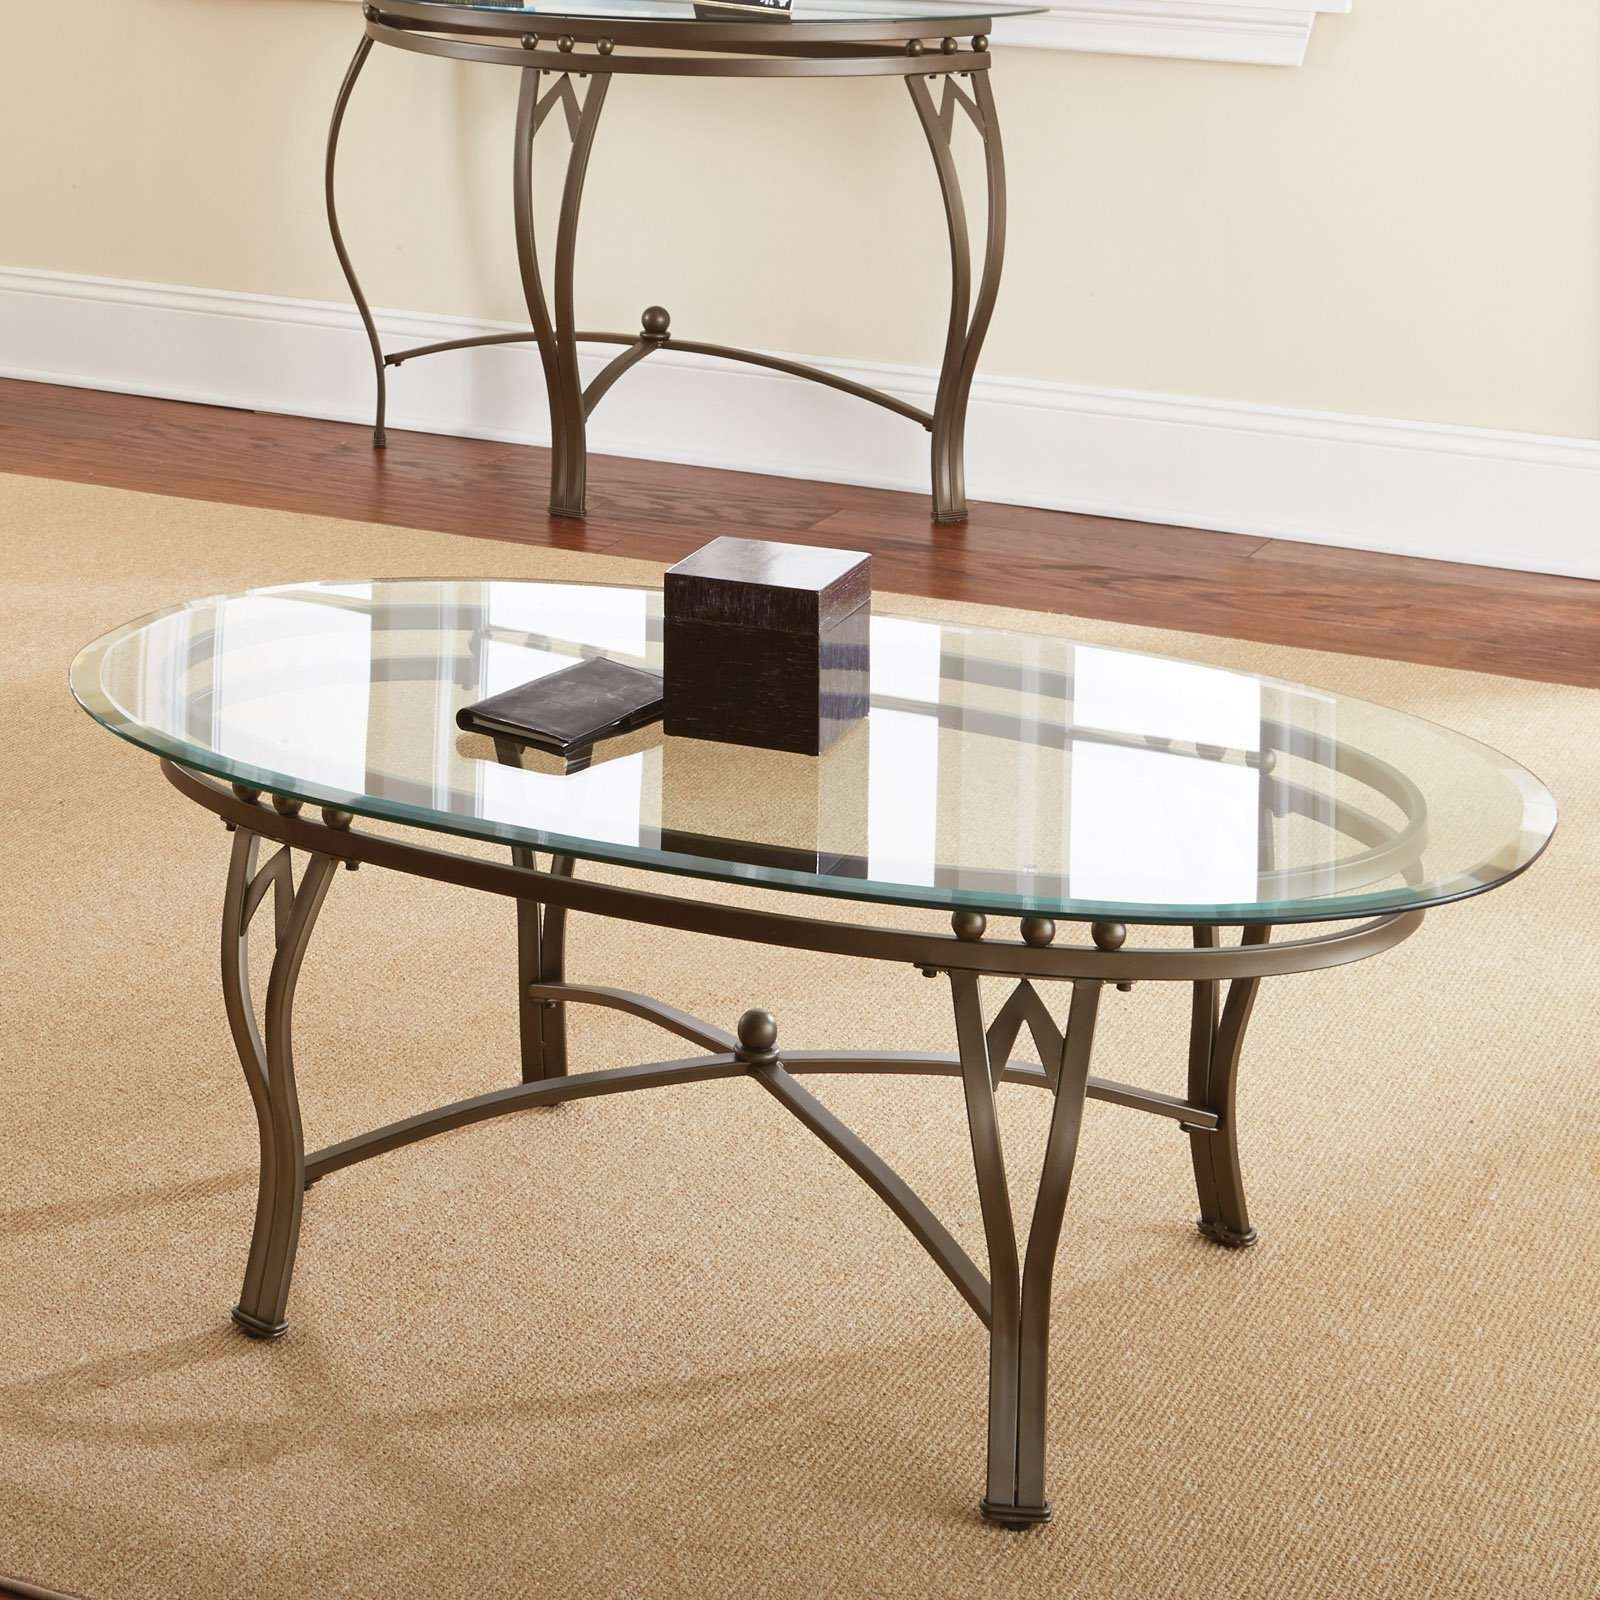 Steve Silver Madrid Oval Glass Top Coffee Table – Walmart Pertaining To Current Oval Glass And Wood Coffee Tables (View 12 of 20)